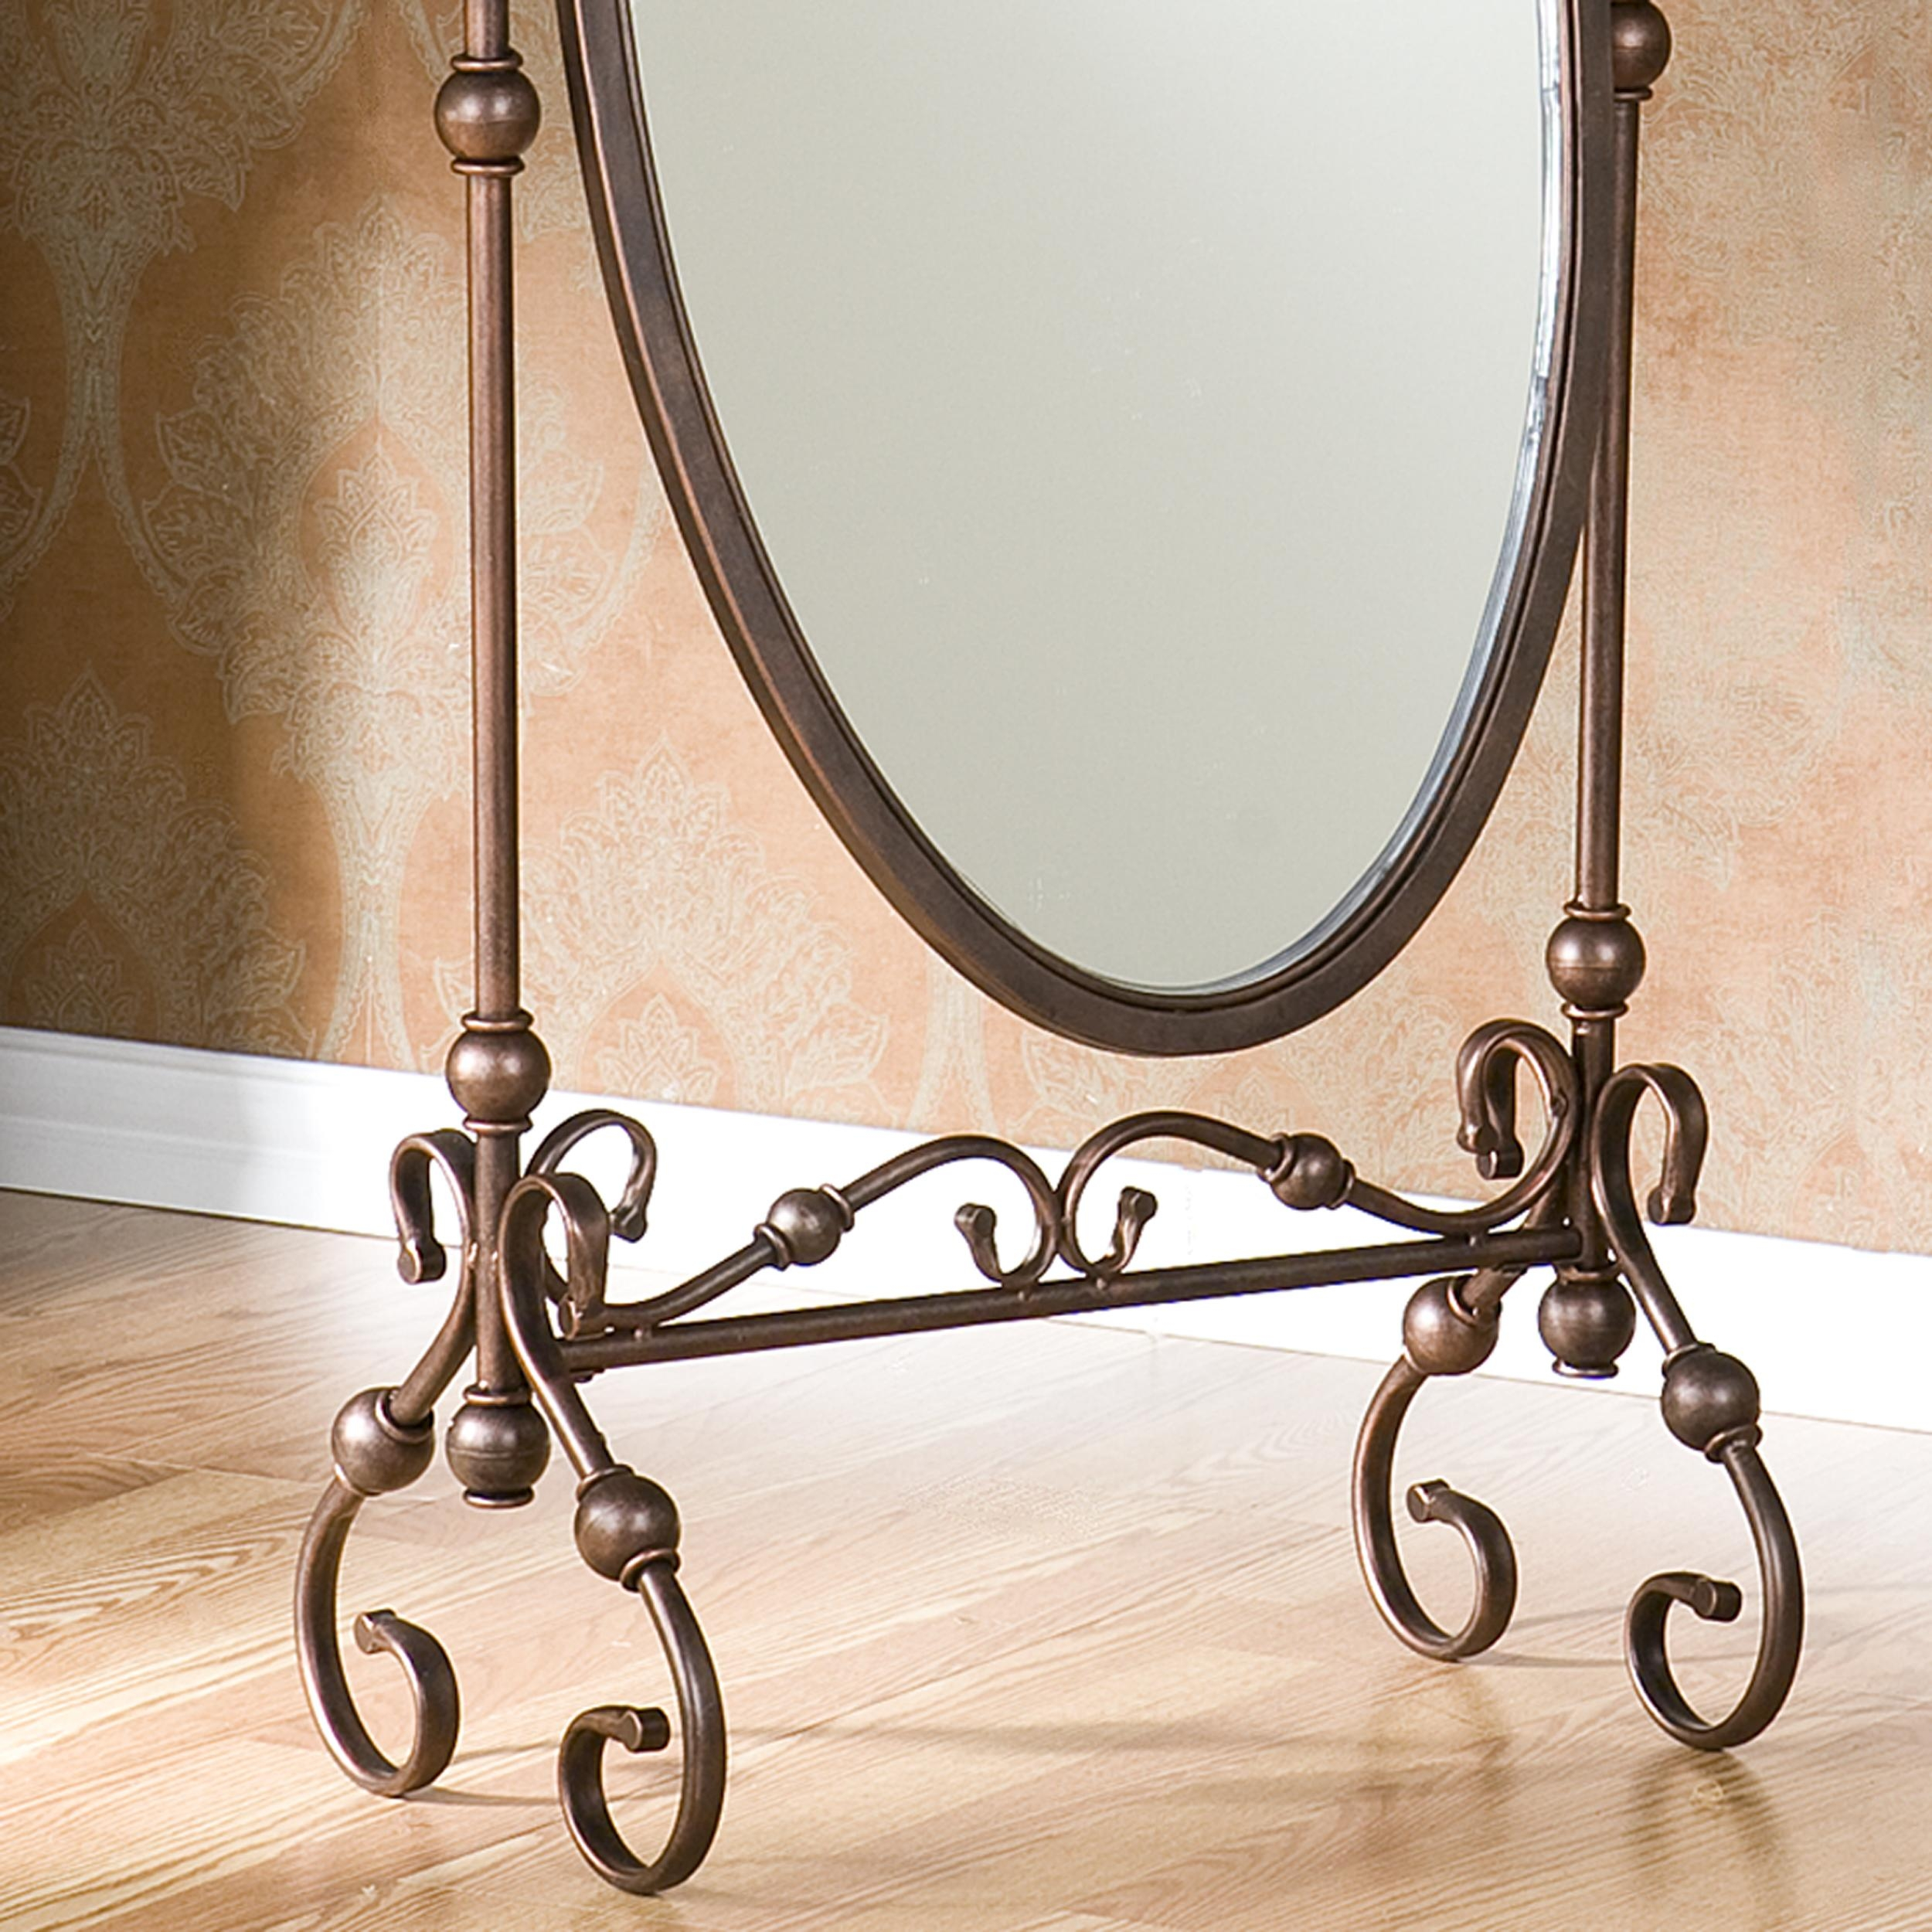 15 Best Ideas Wrought Iron Full Length Mirror Mirror Ideas